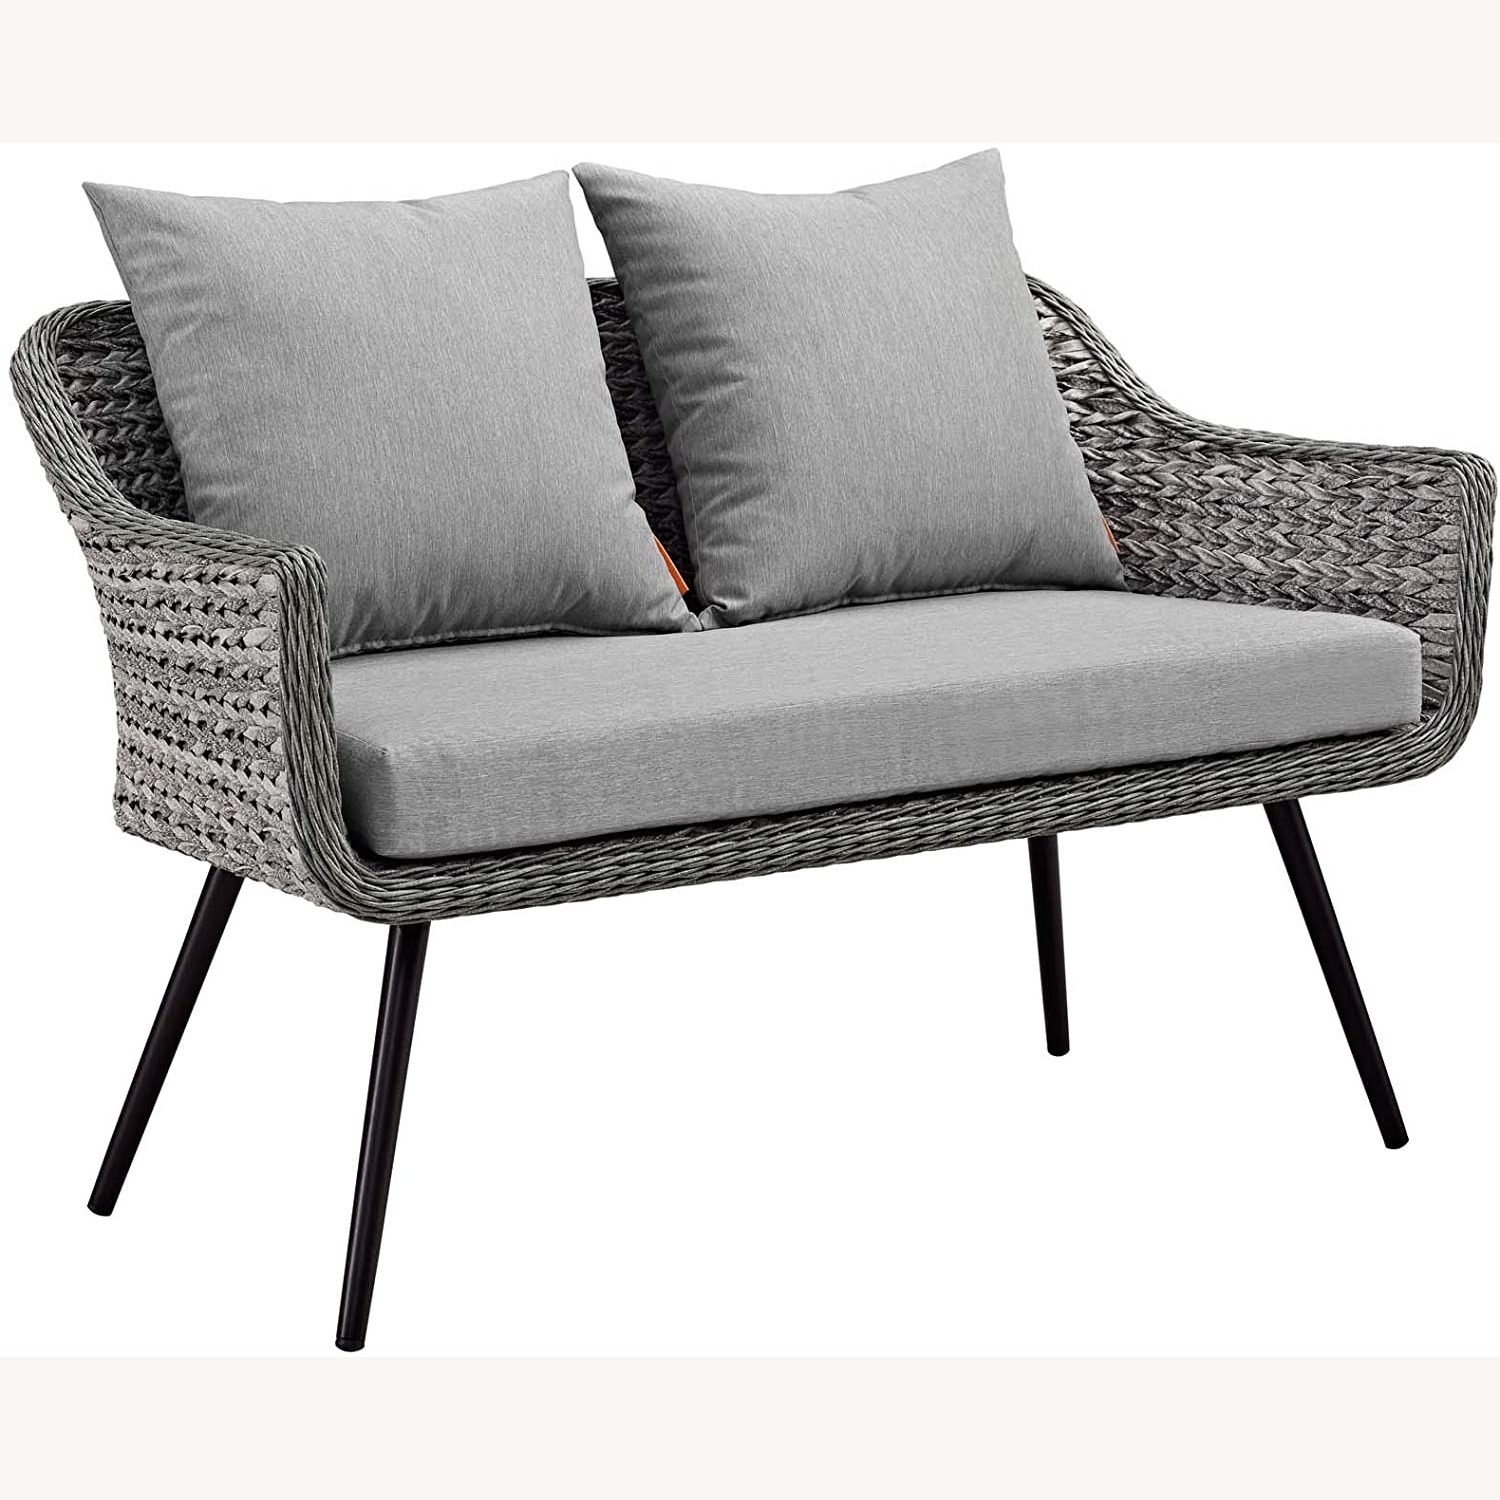 Outdoor Loveseat In Gray-On-Gray Tone Finish - image-1